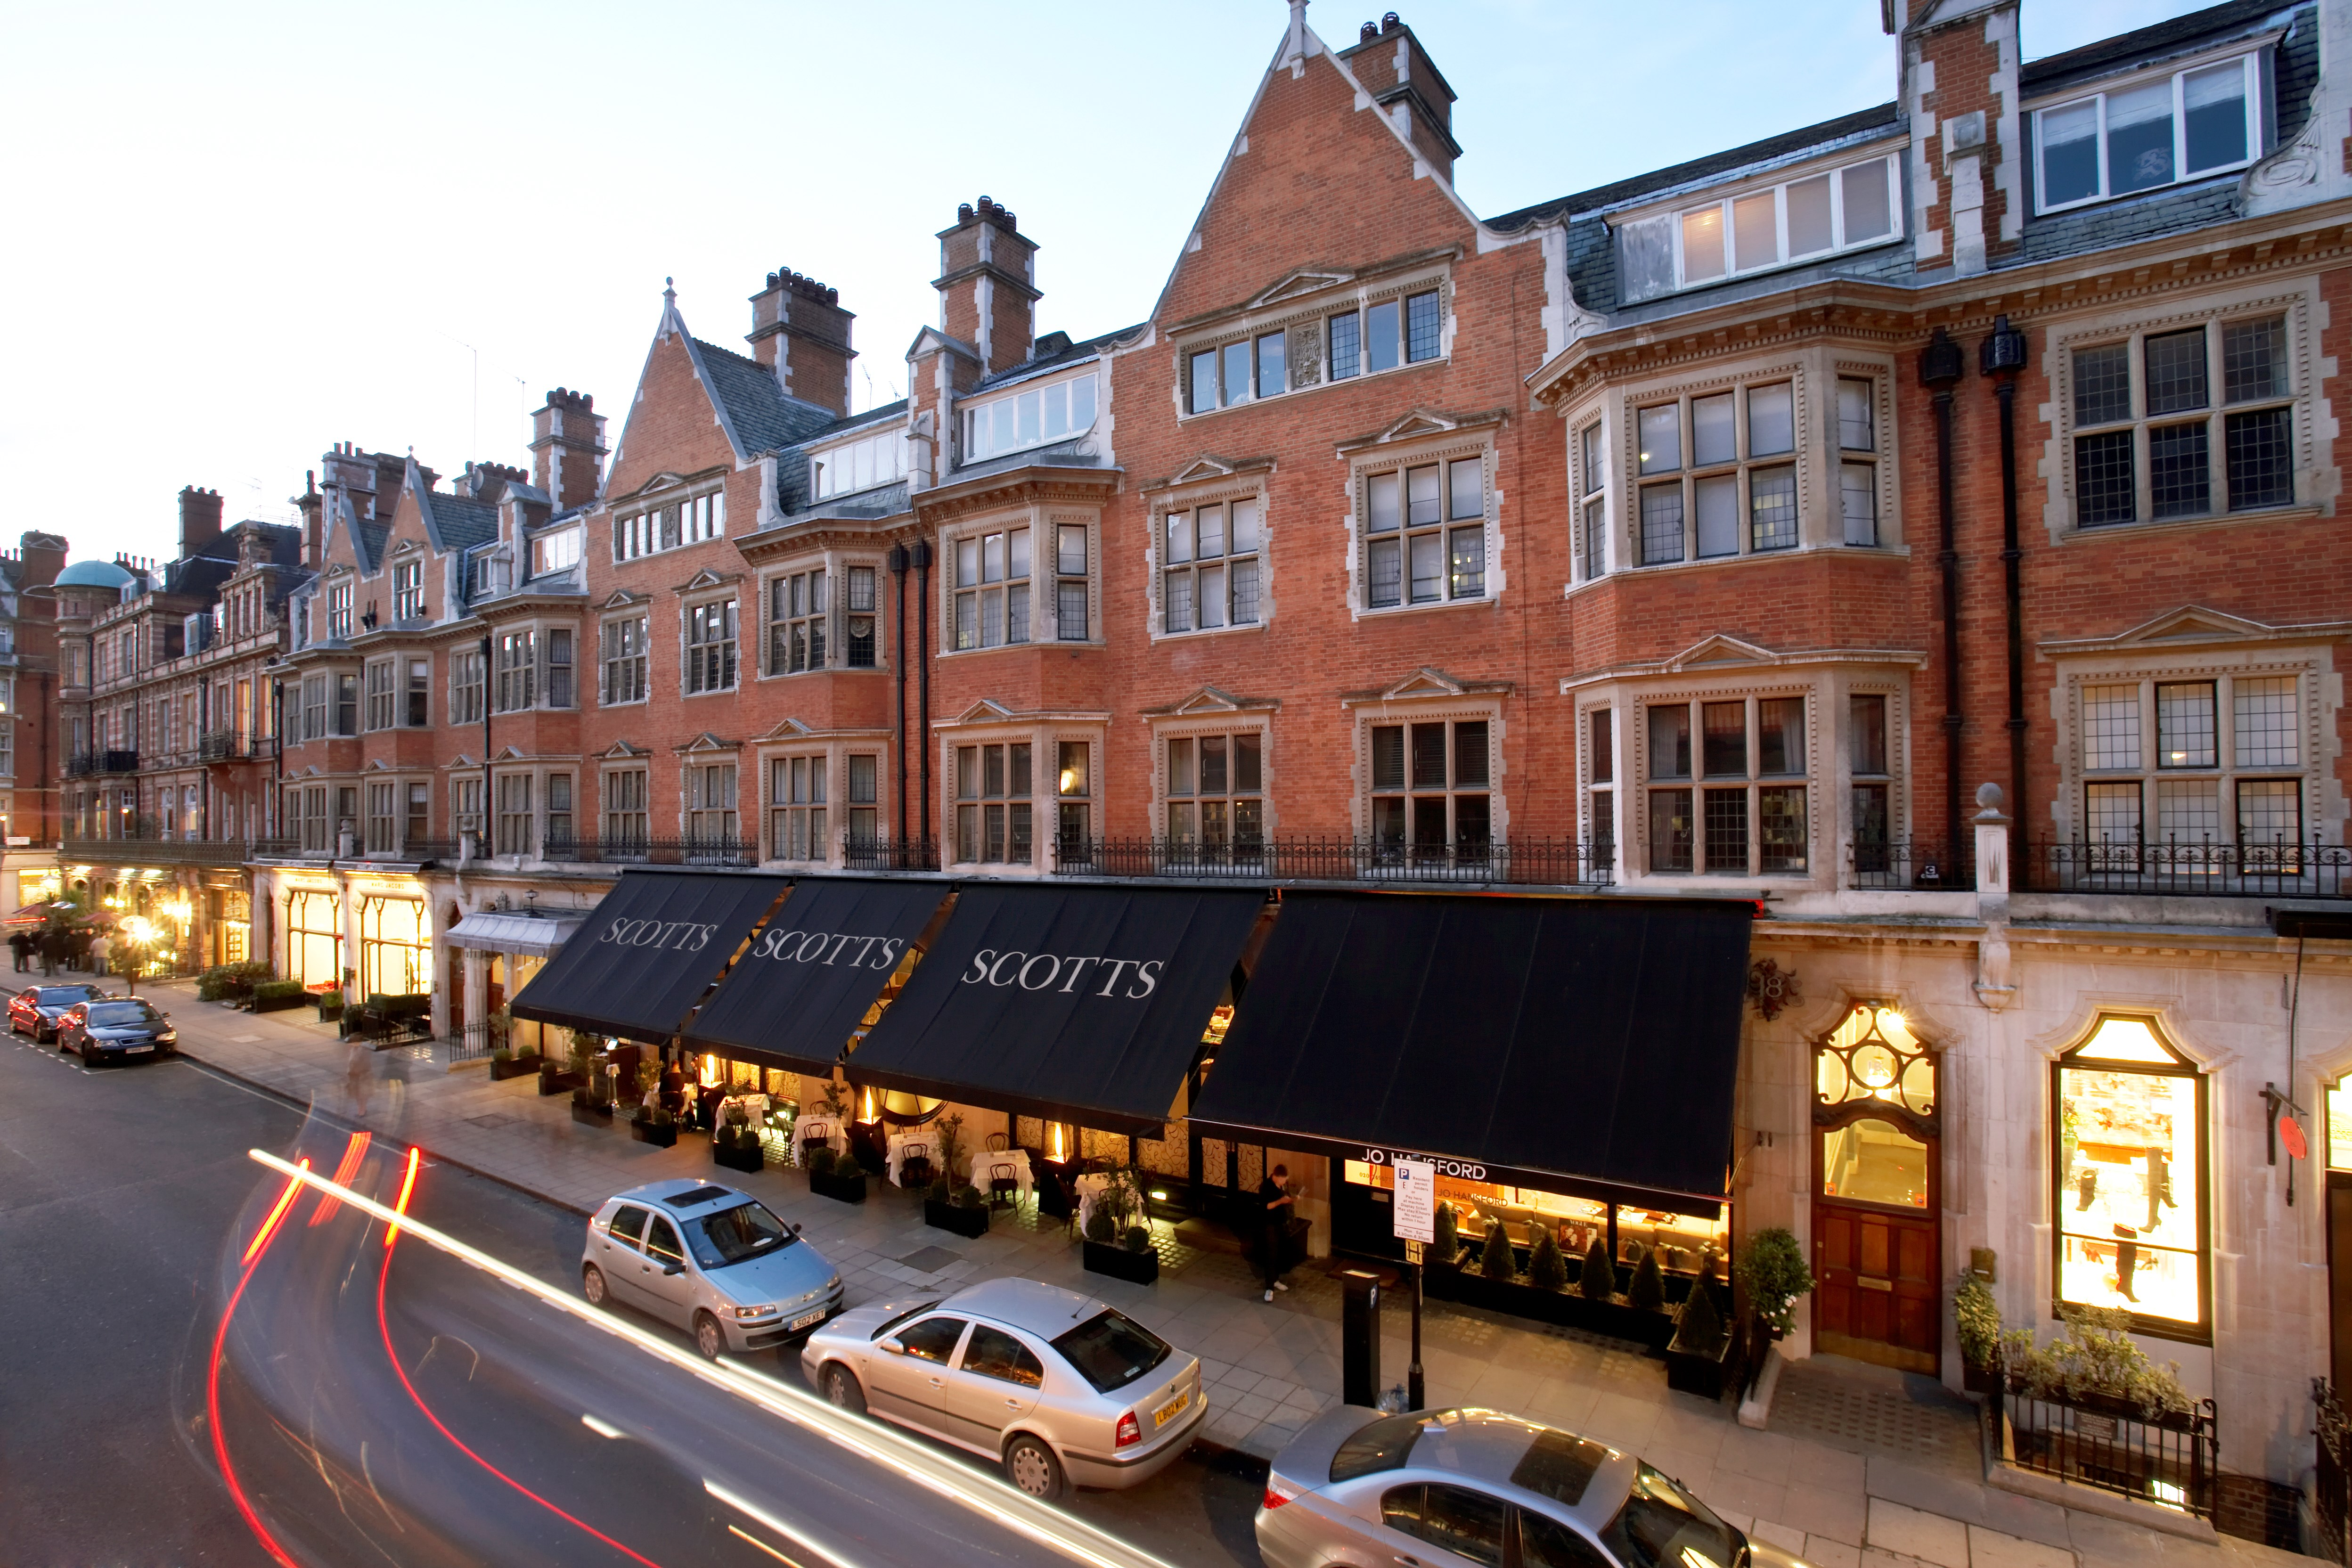 Scott's in Mayfair